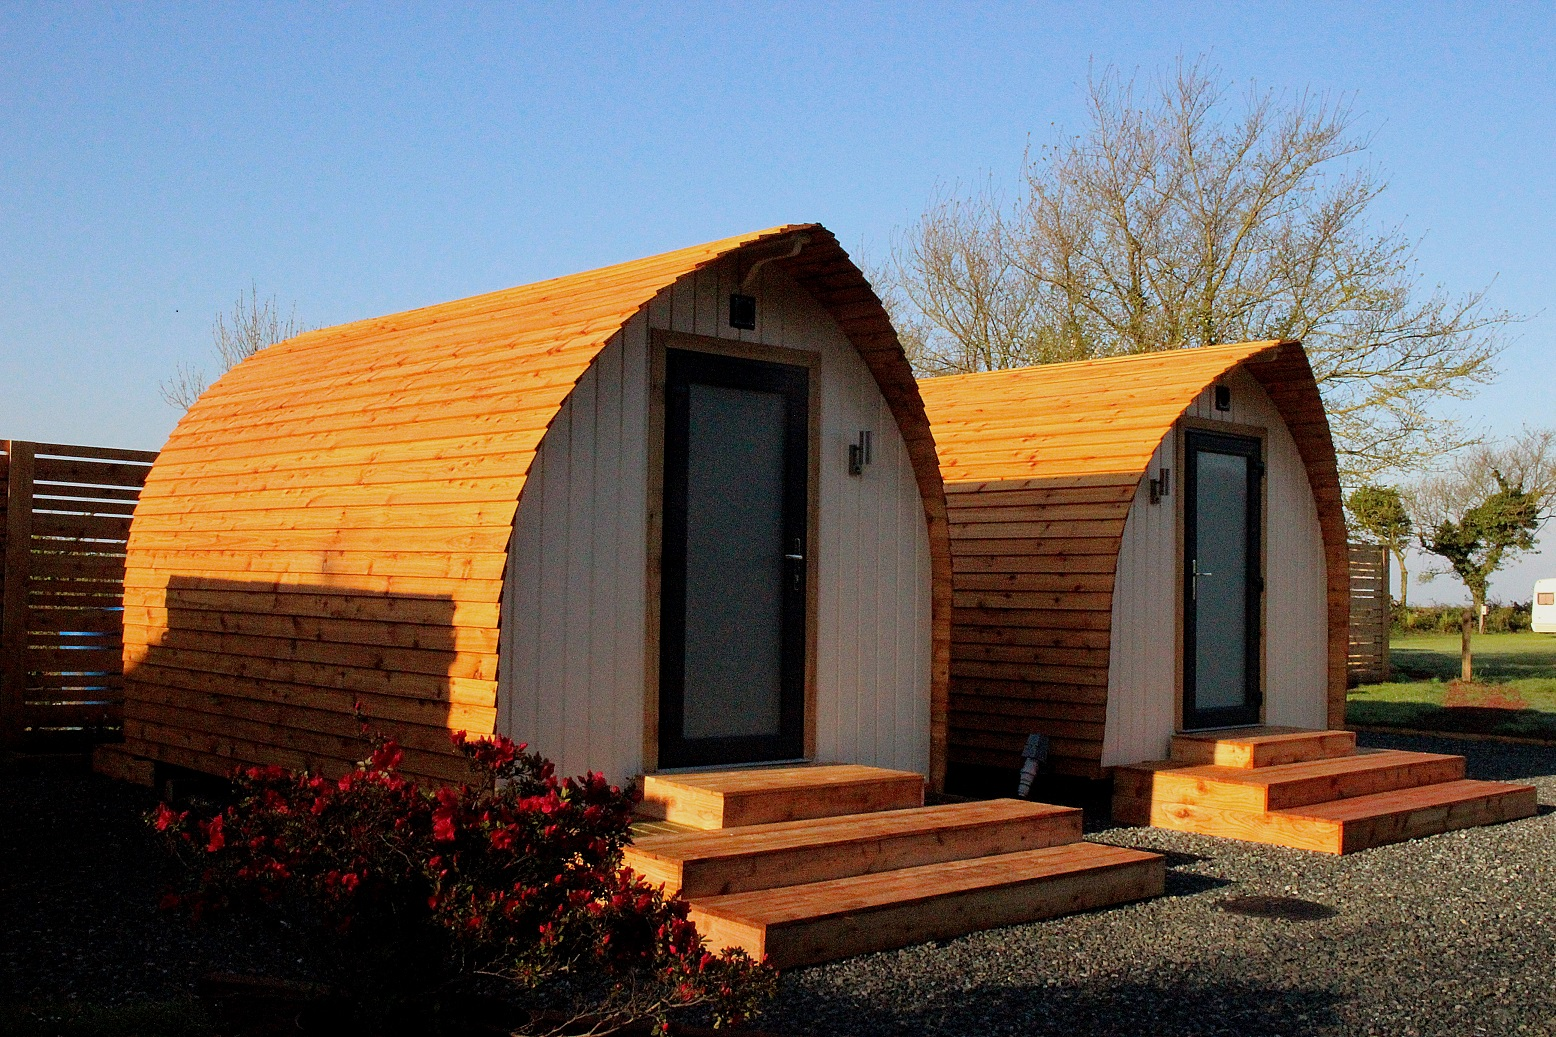 Glamping Pods – Brecon Beacons National Park placeholder image